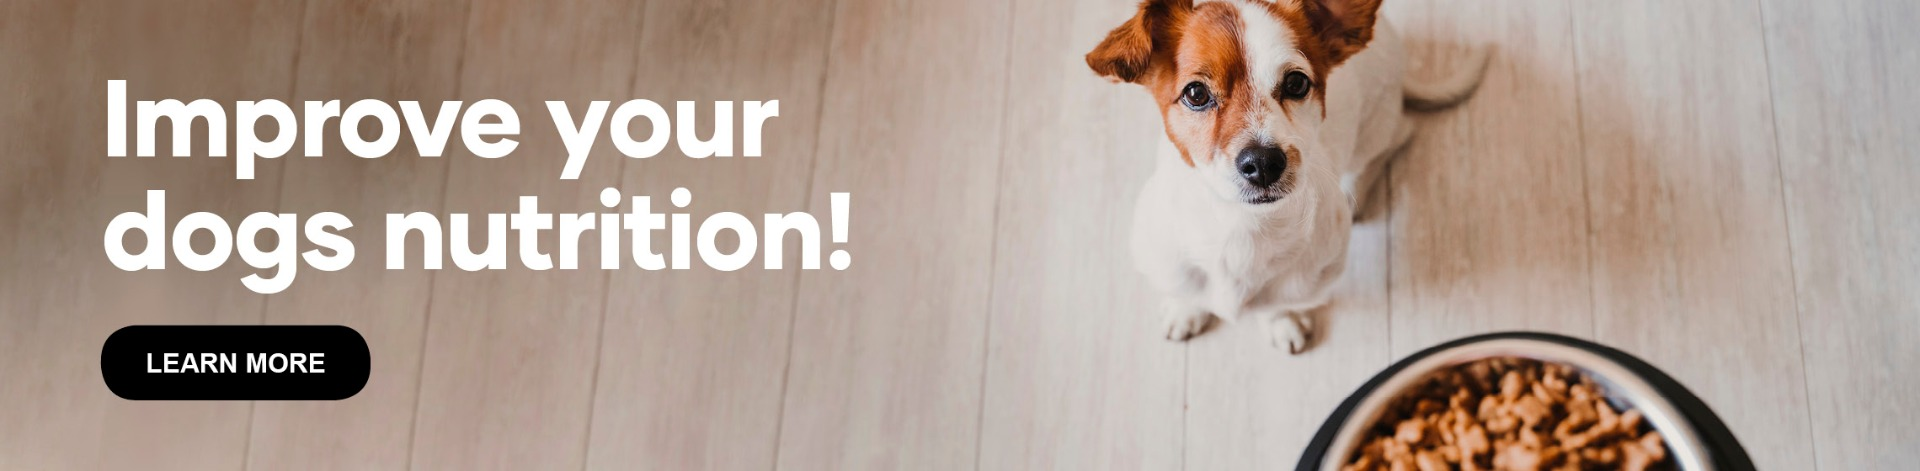 Improve your dogs nutrition